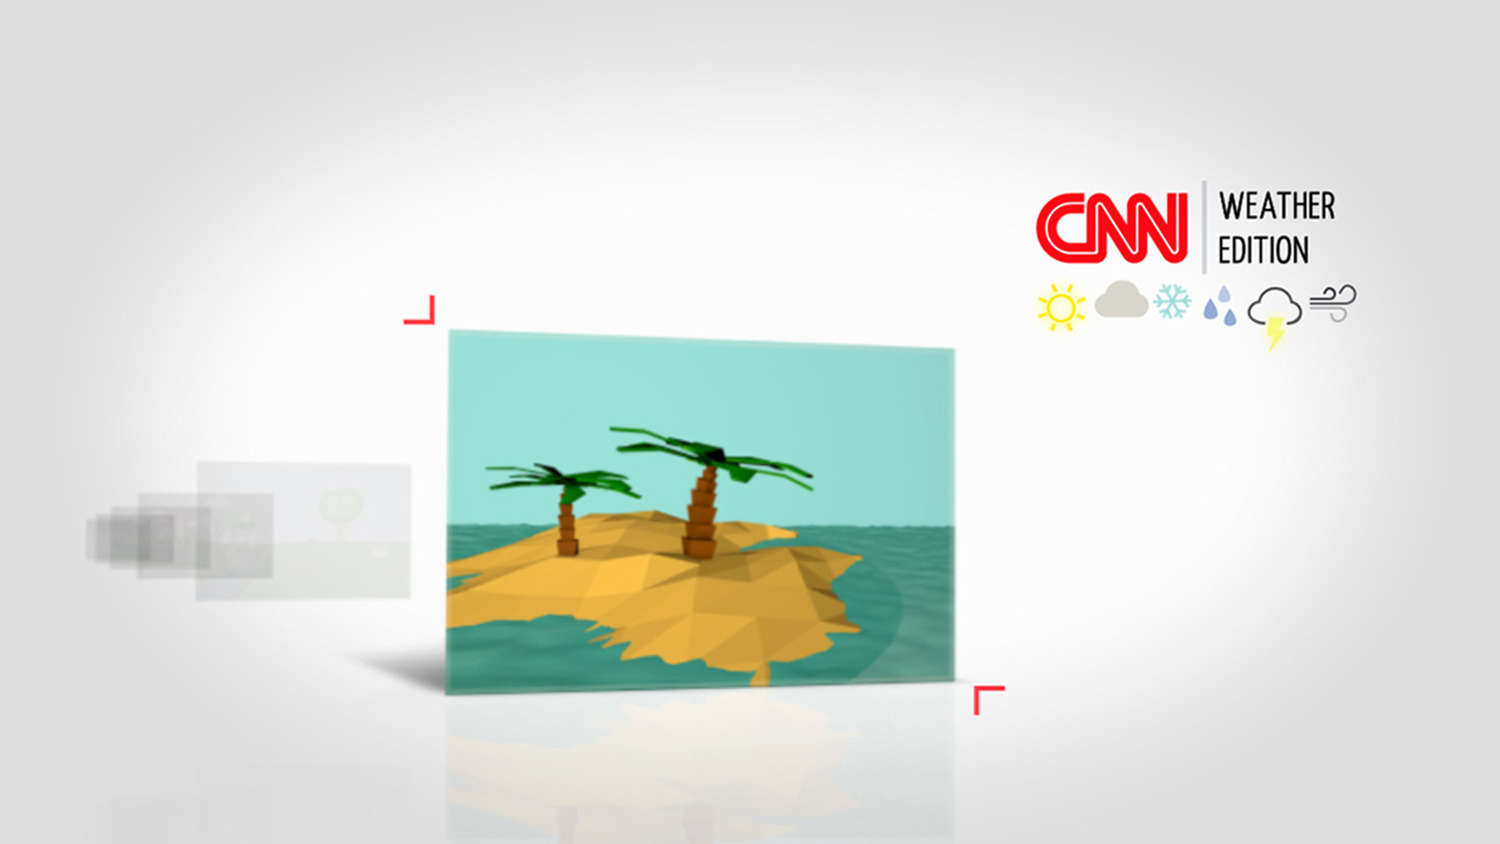 CNN_weather_edition_Álvaro_Melgosa